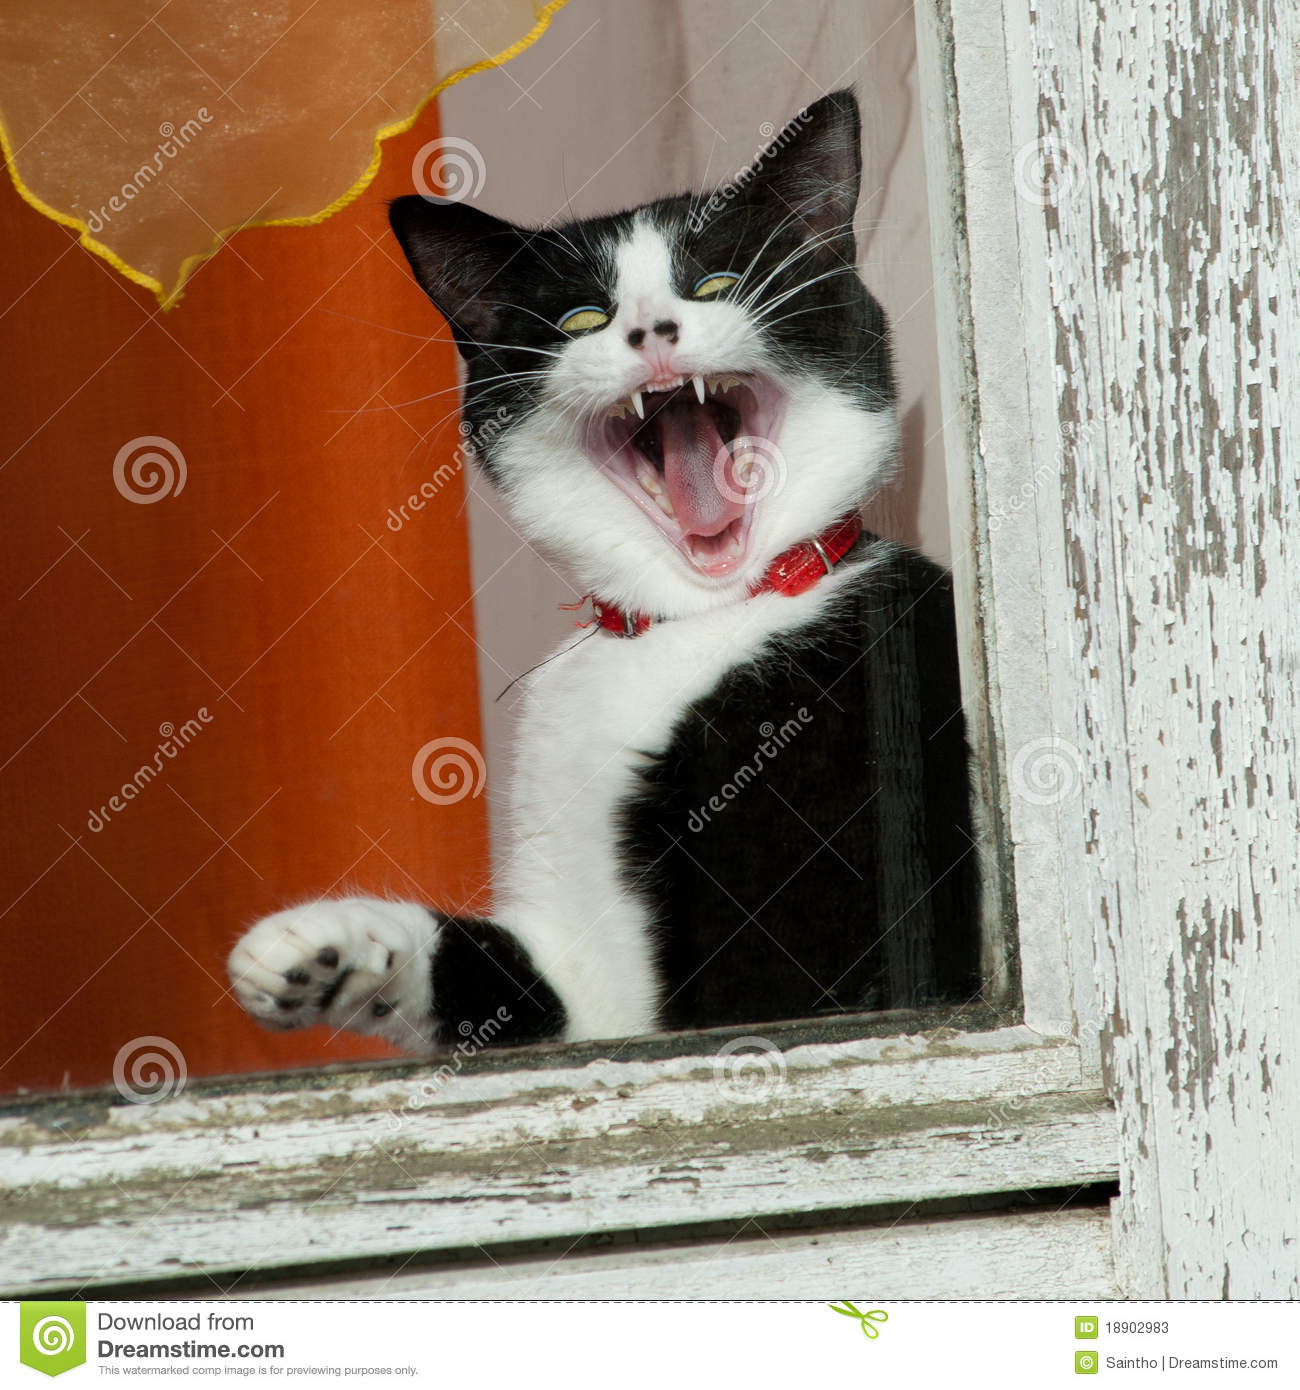 Amazing Cat: Amazing Funny Cat Stock Image. Image Of Fear, Special